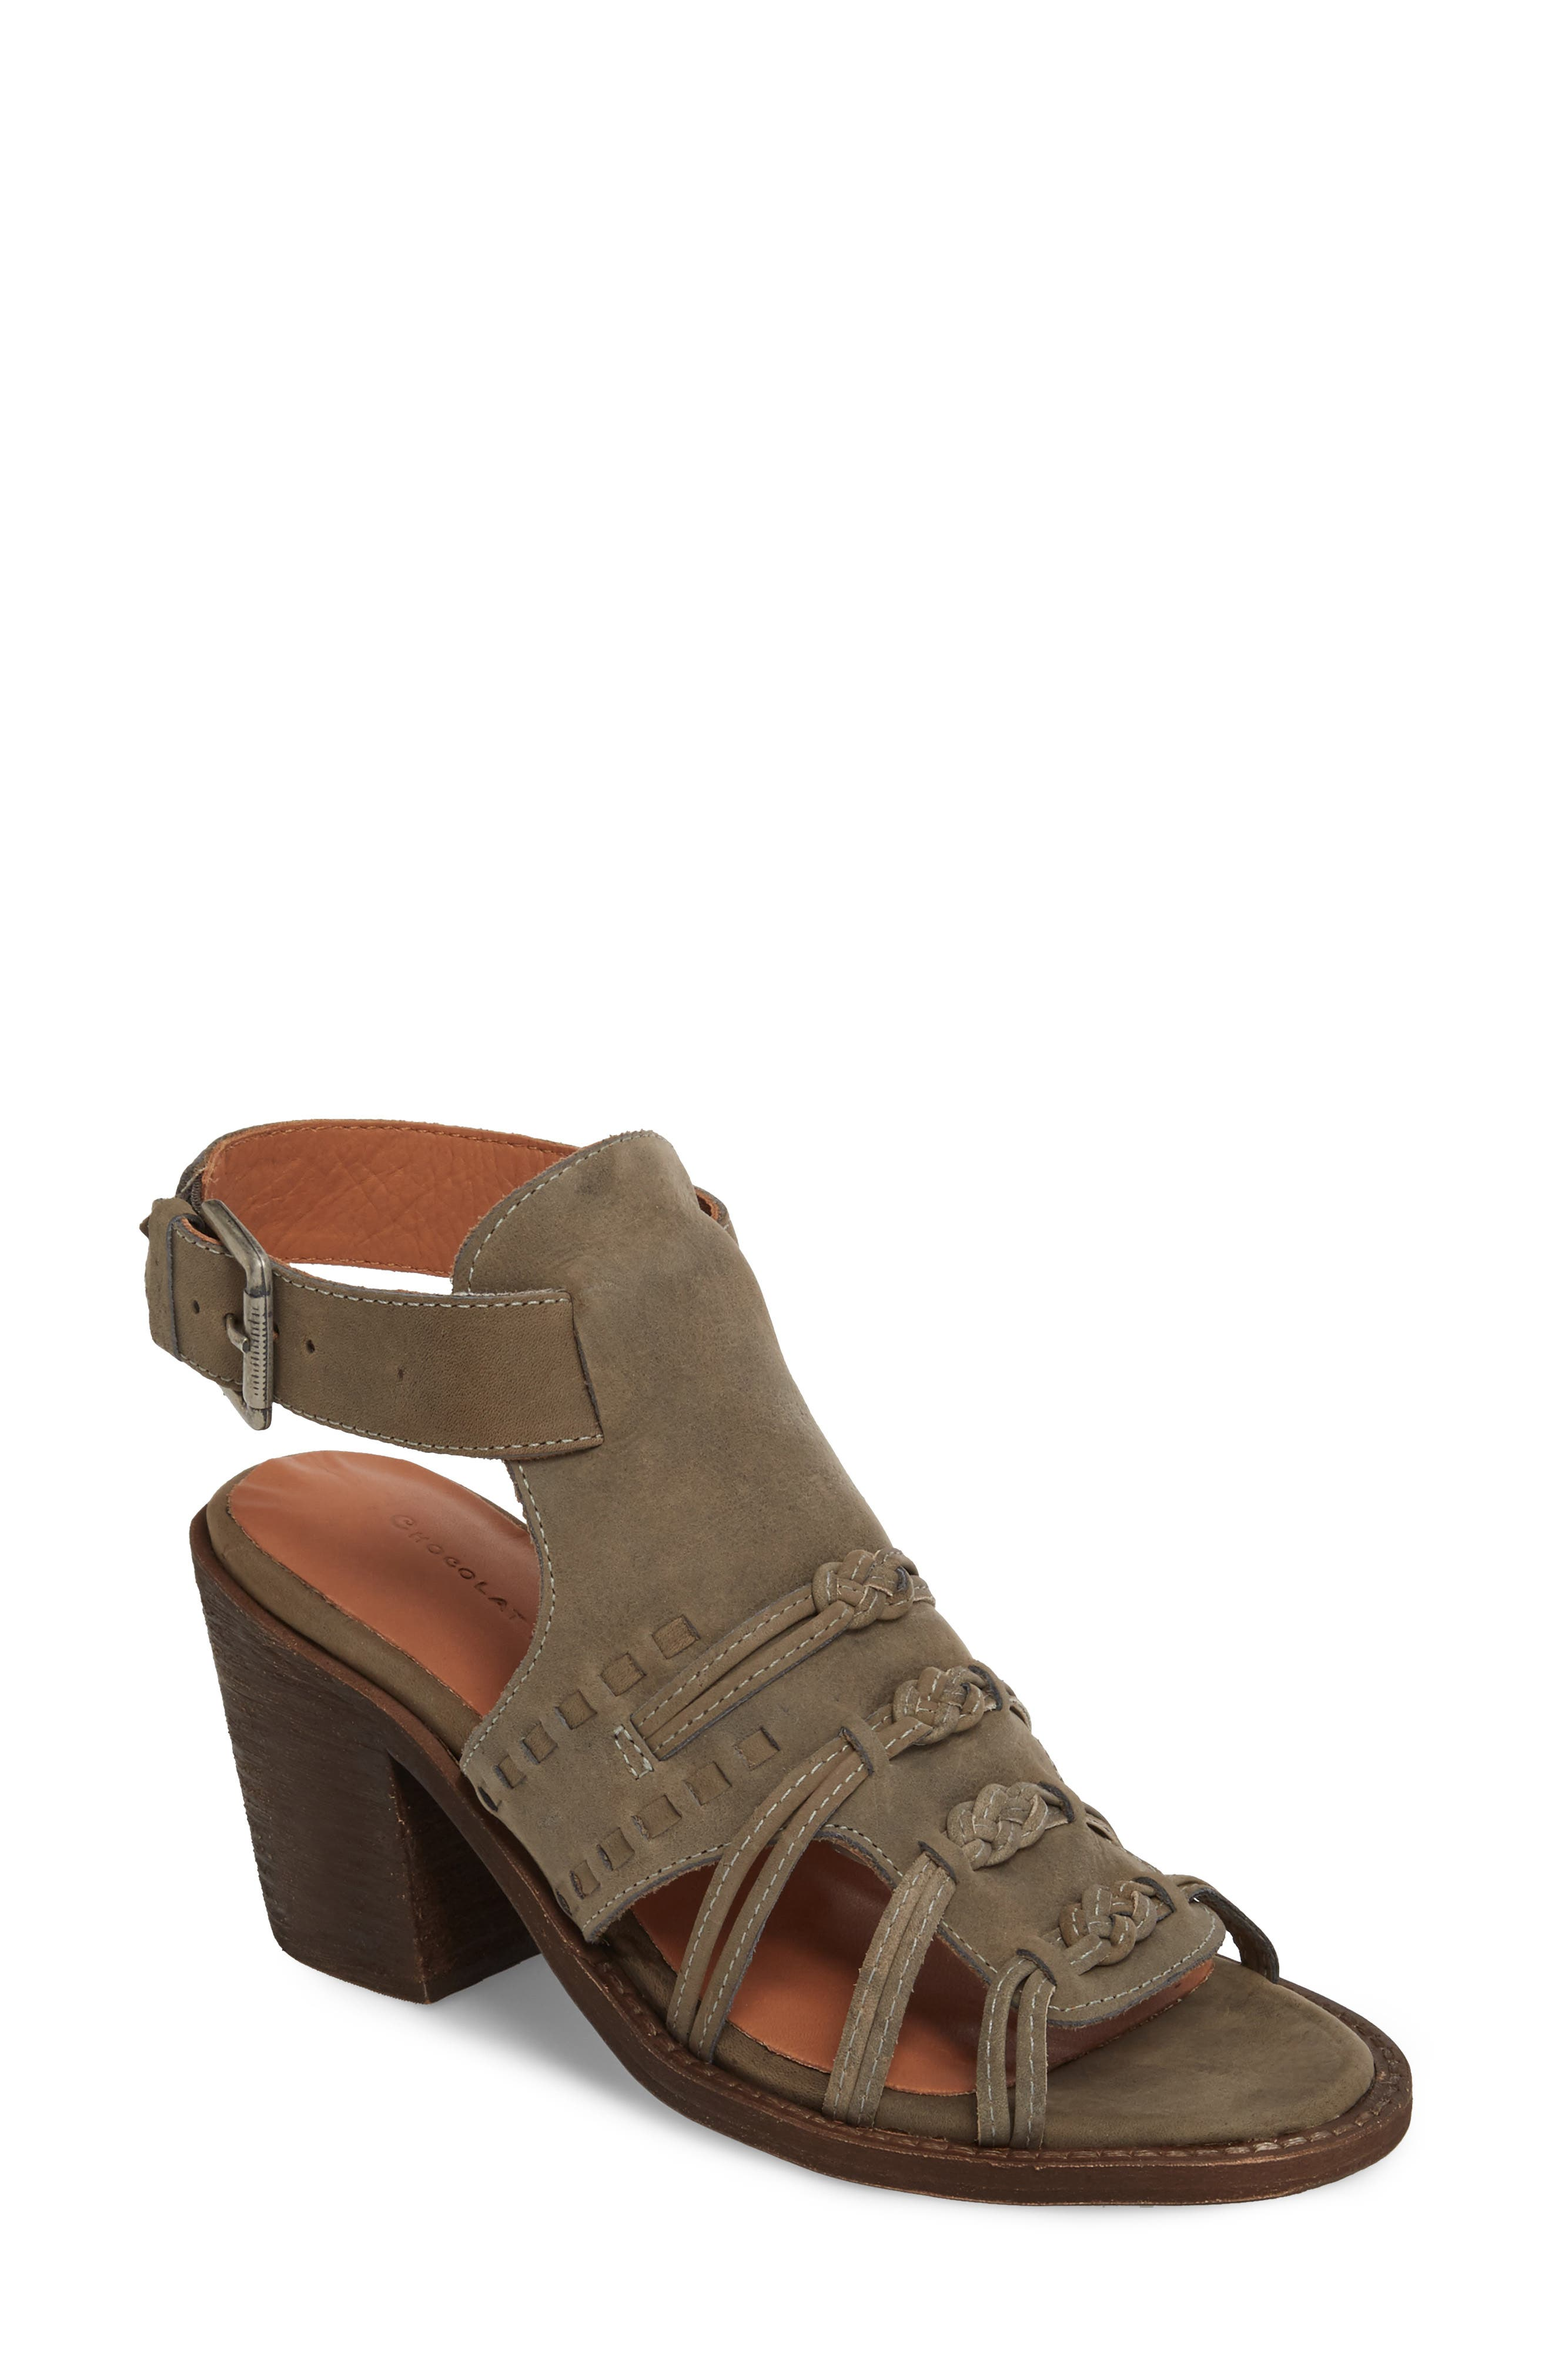 Volcano Sandal,                         Main,                         color, Grey Leather